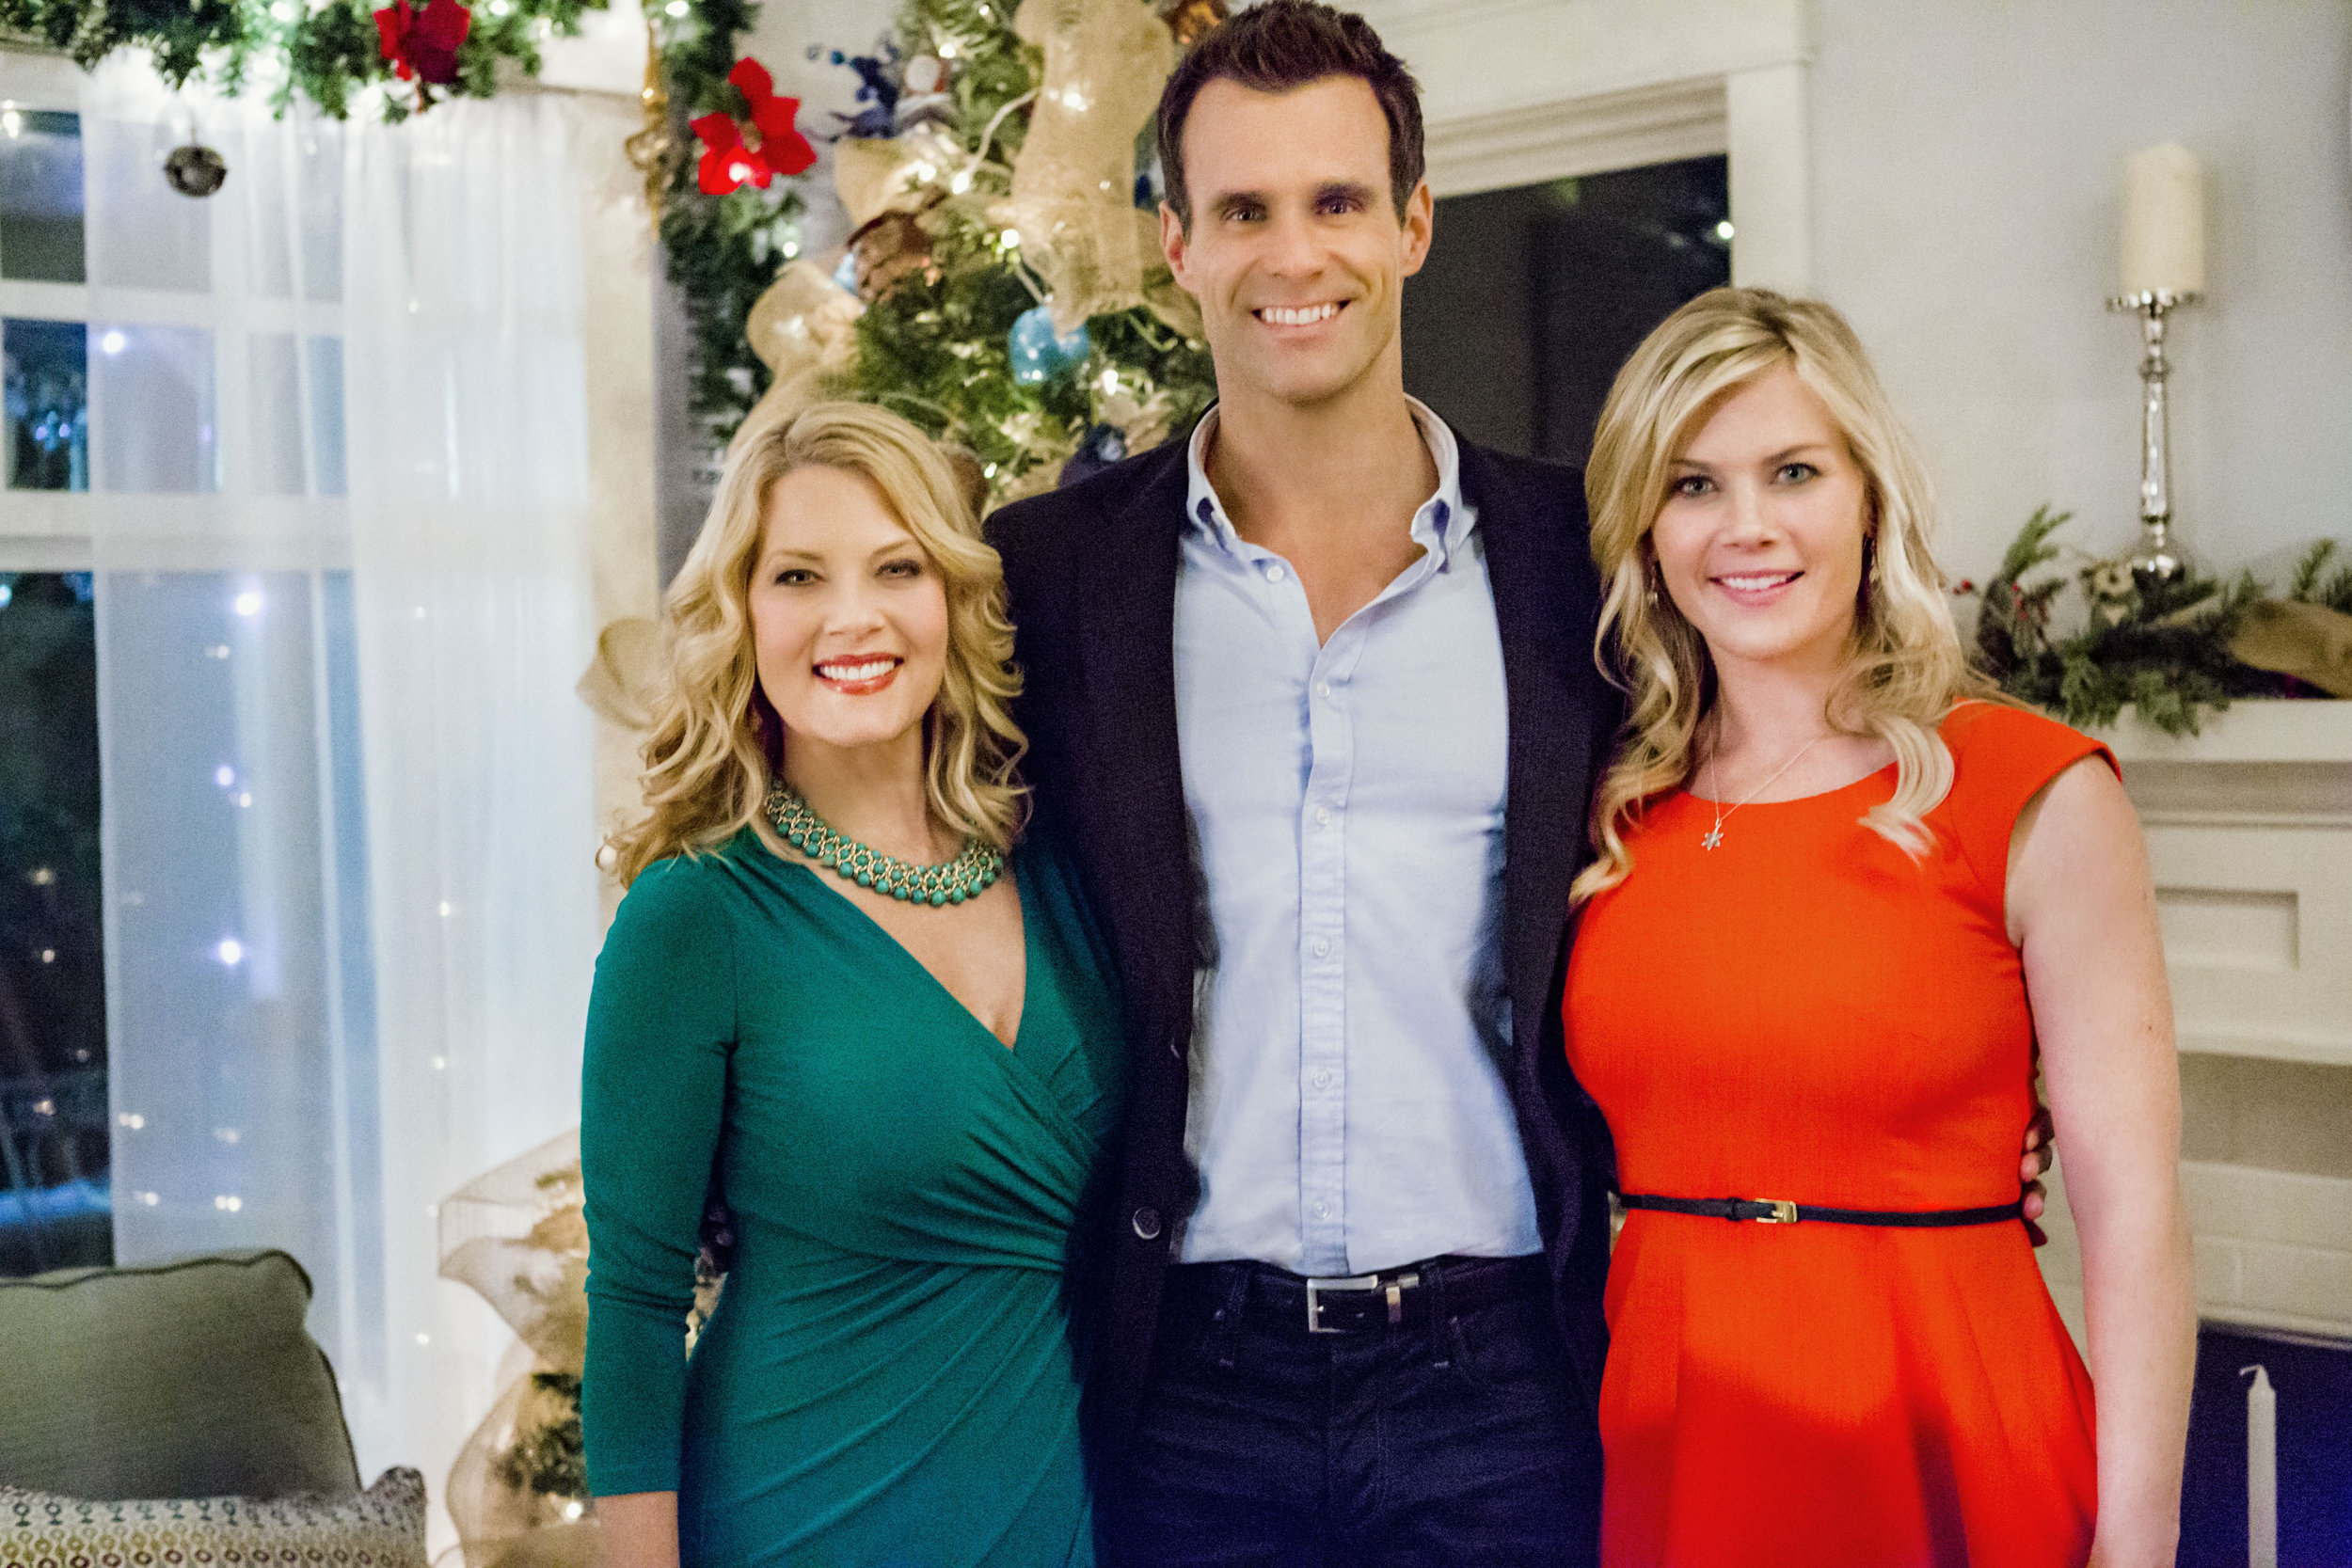 movies drama mystery more hallmark movies and mysteries - The Christmas Box Cast